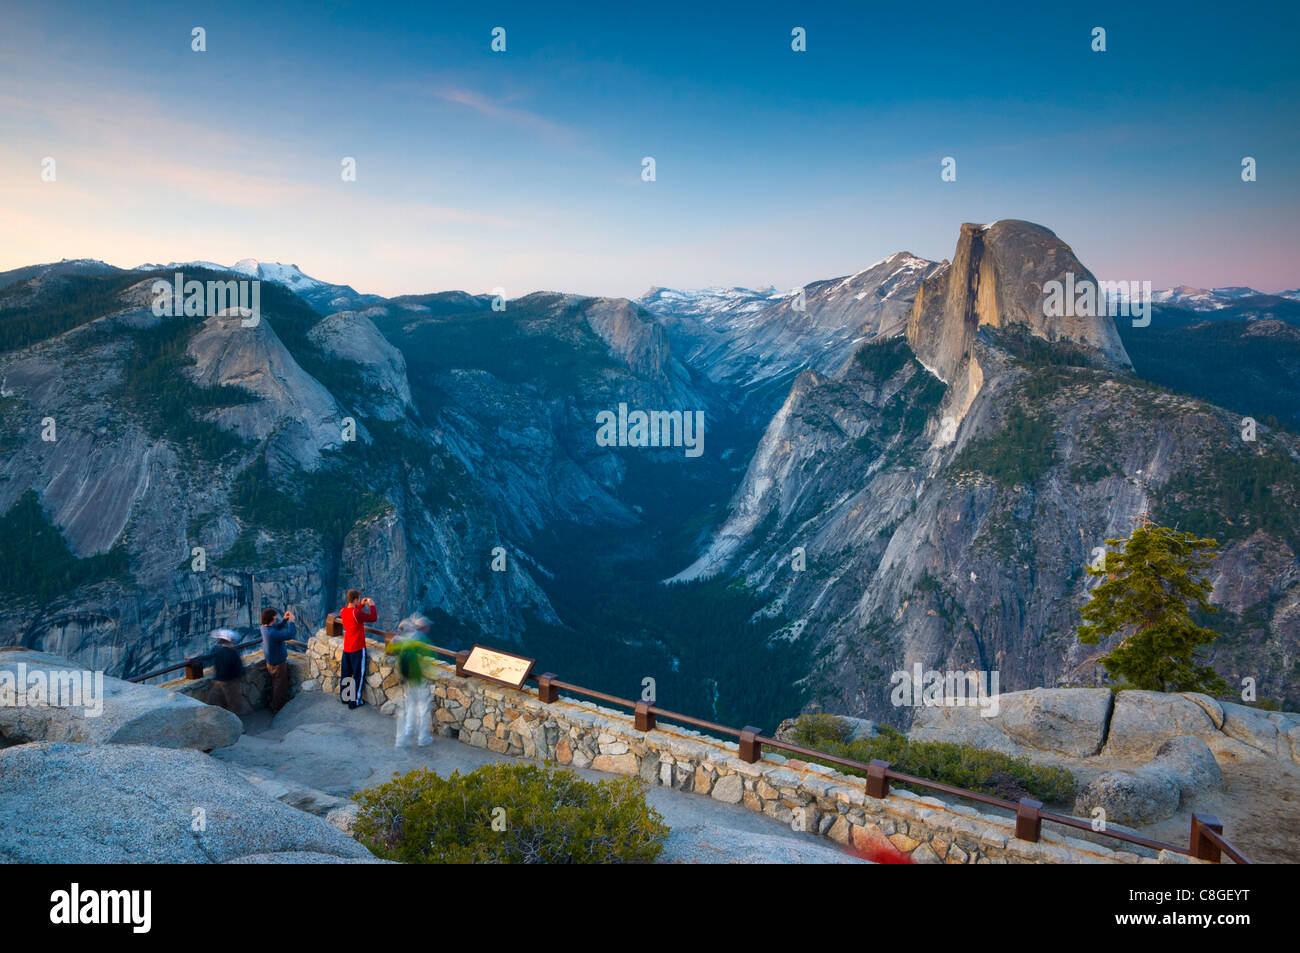 Half Dome from Glacier Point, Yosemite National Park, UNESCO World Heritage Site, California, United States of America - Stock Image